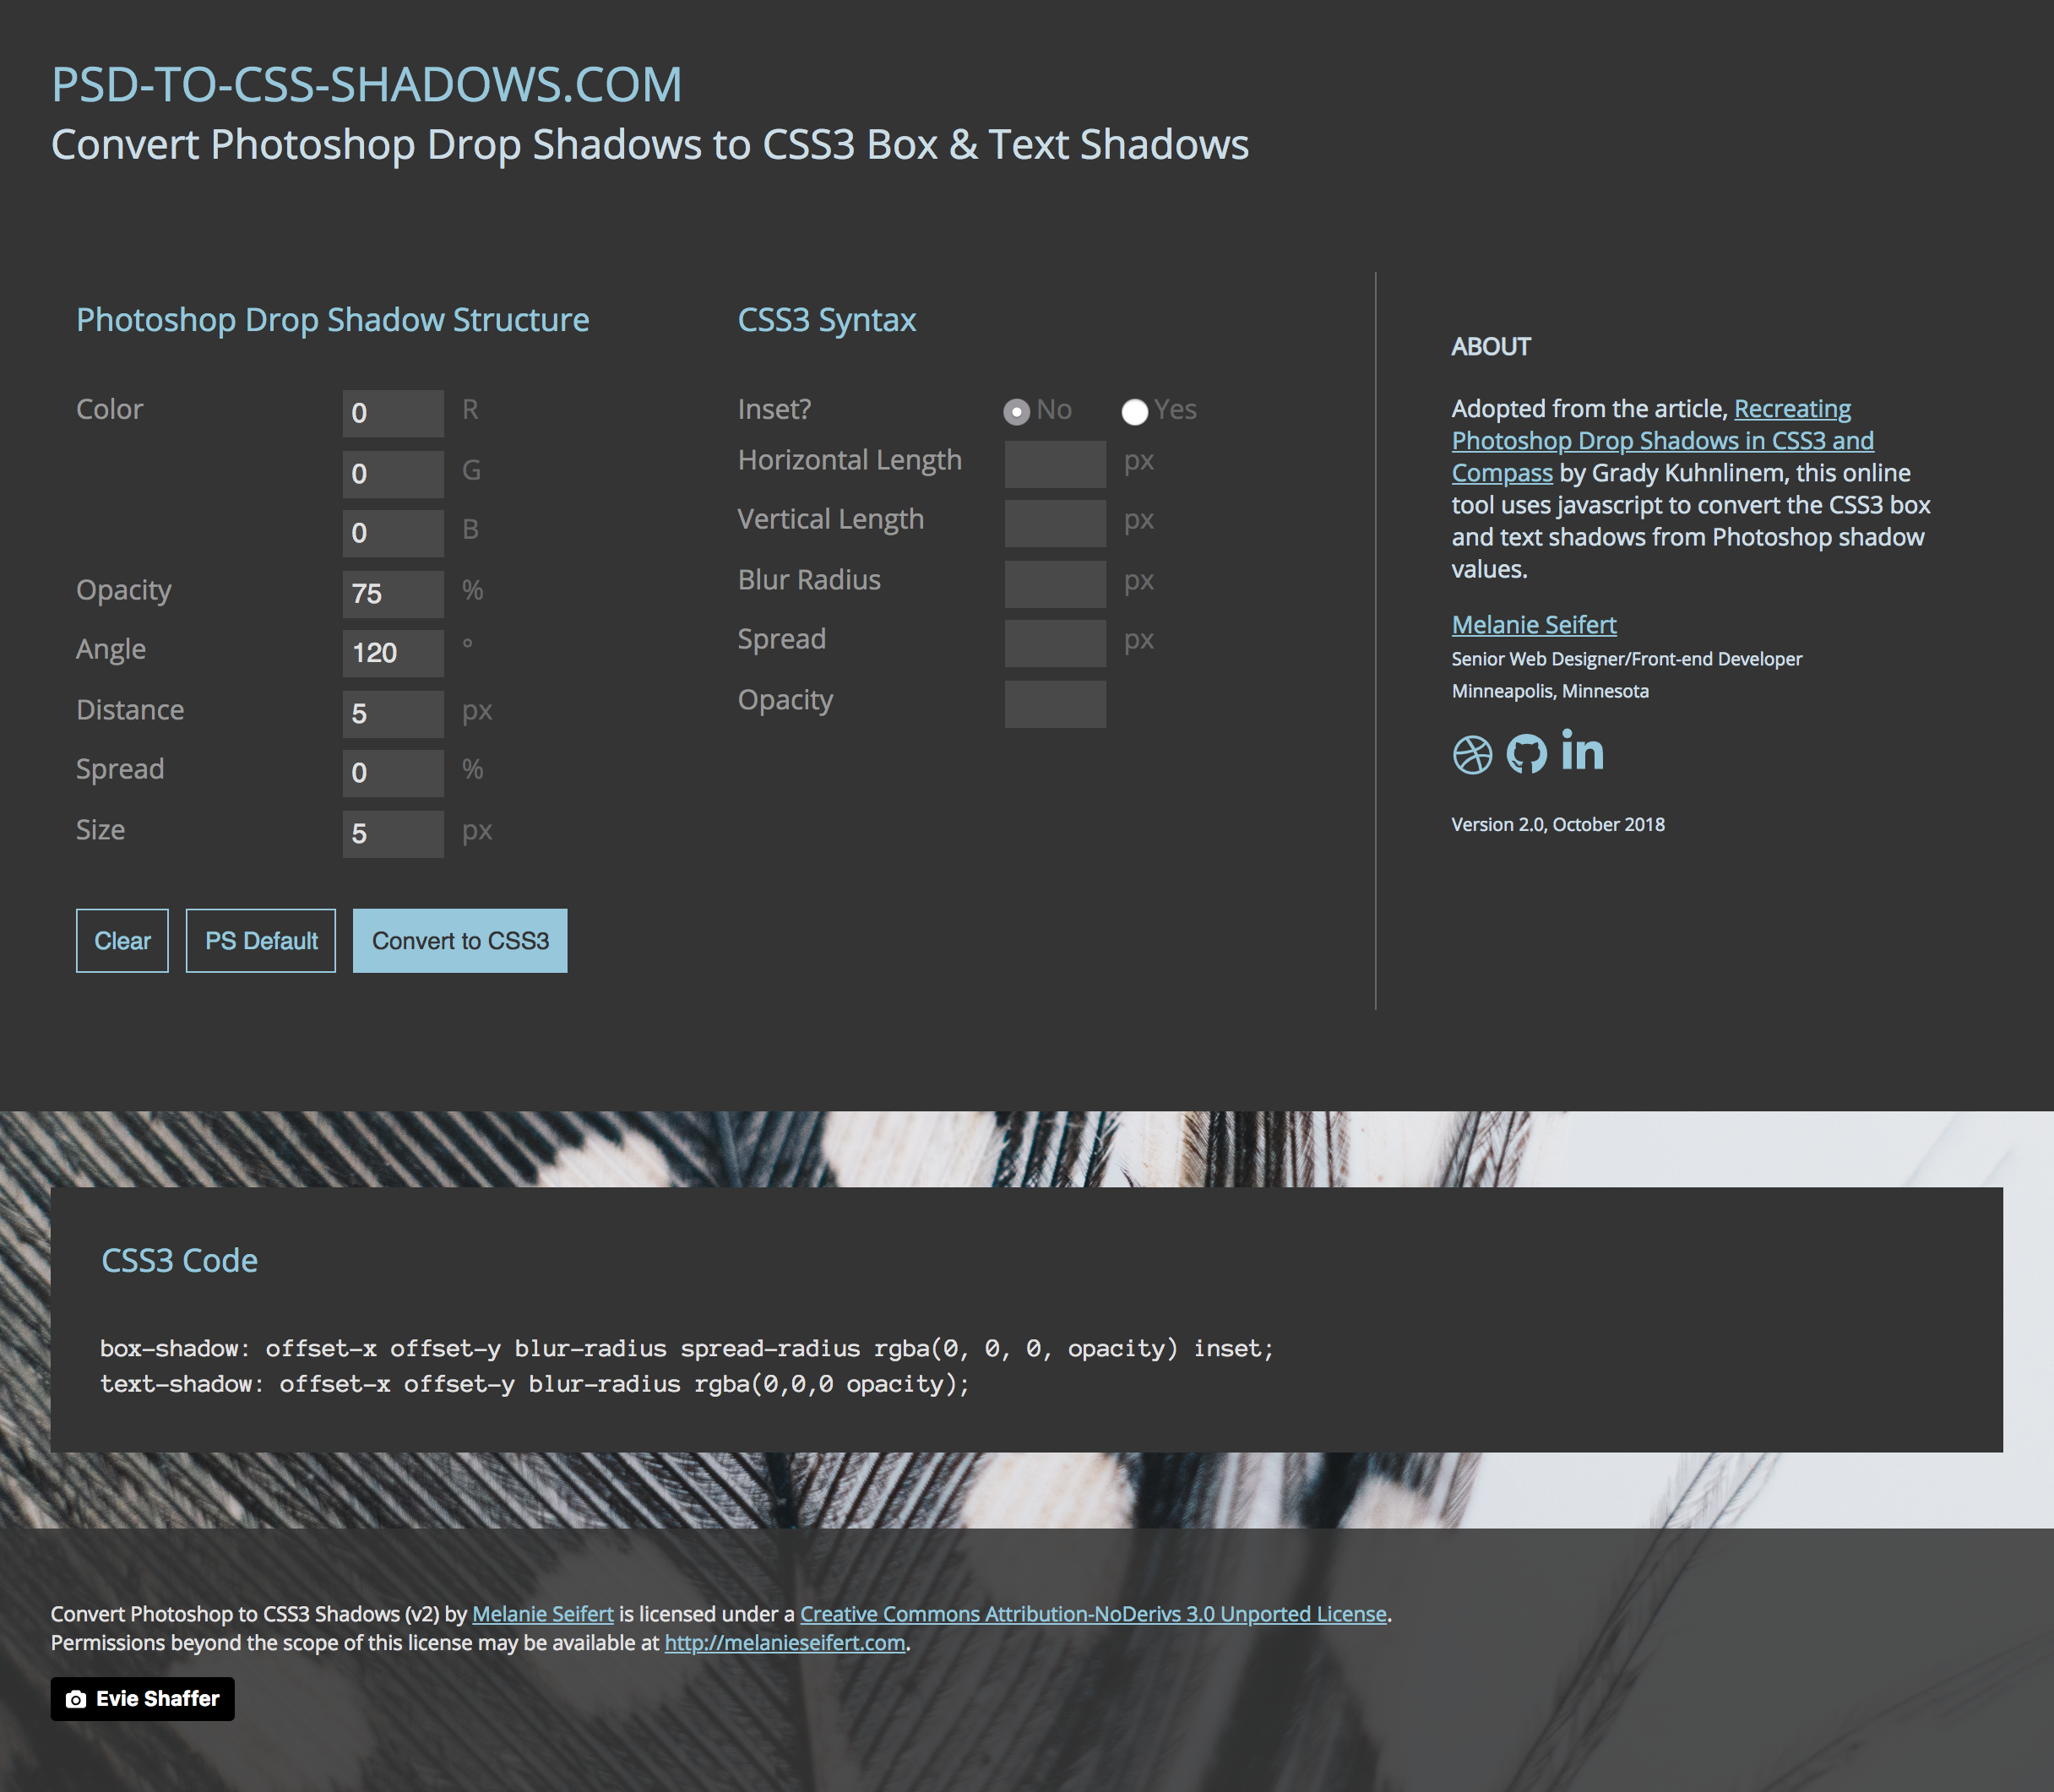 Screencapture psd to css shadows 2018 10 23 12 52 27